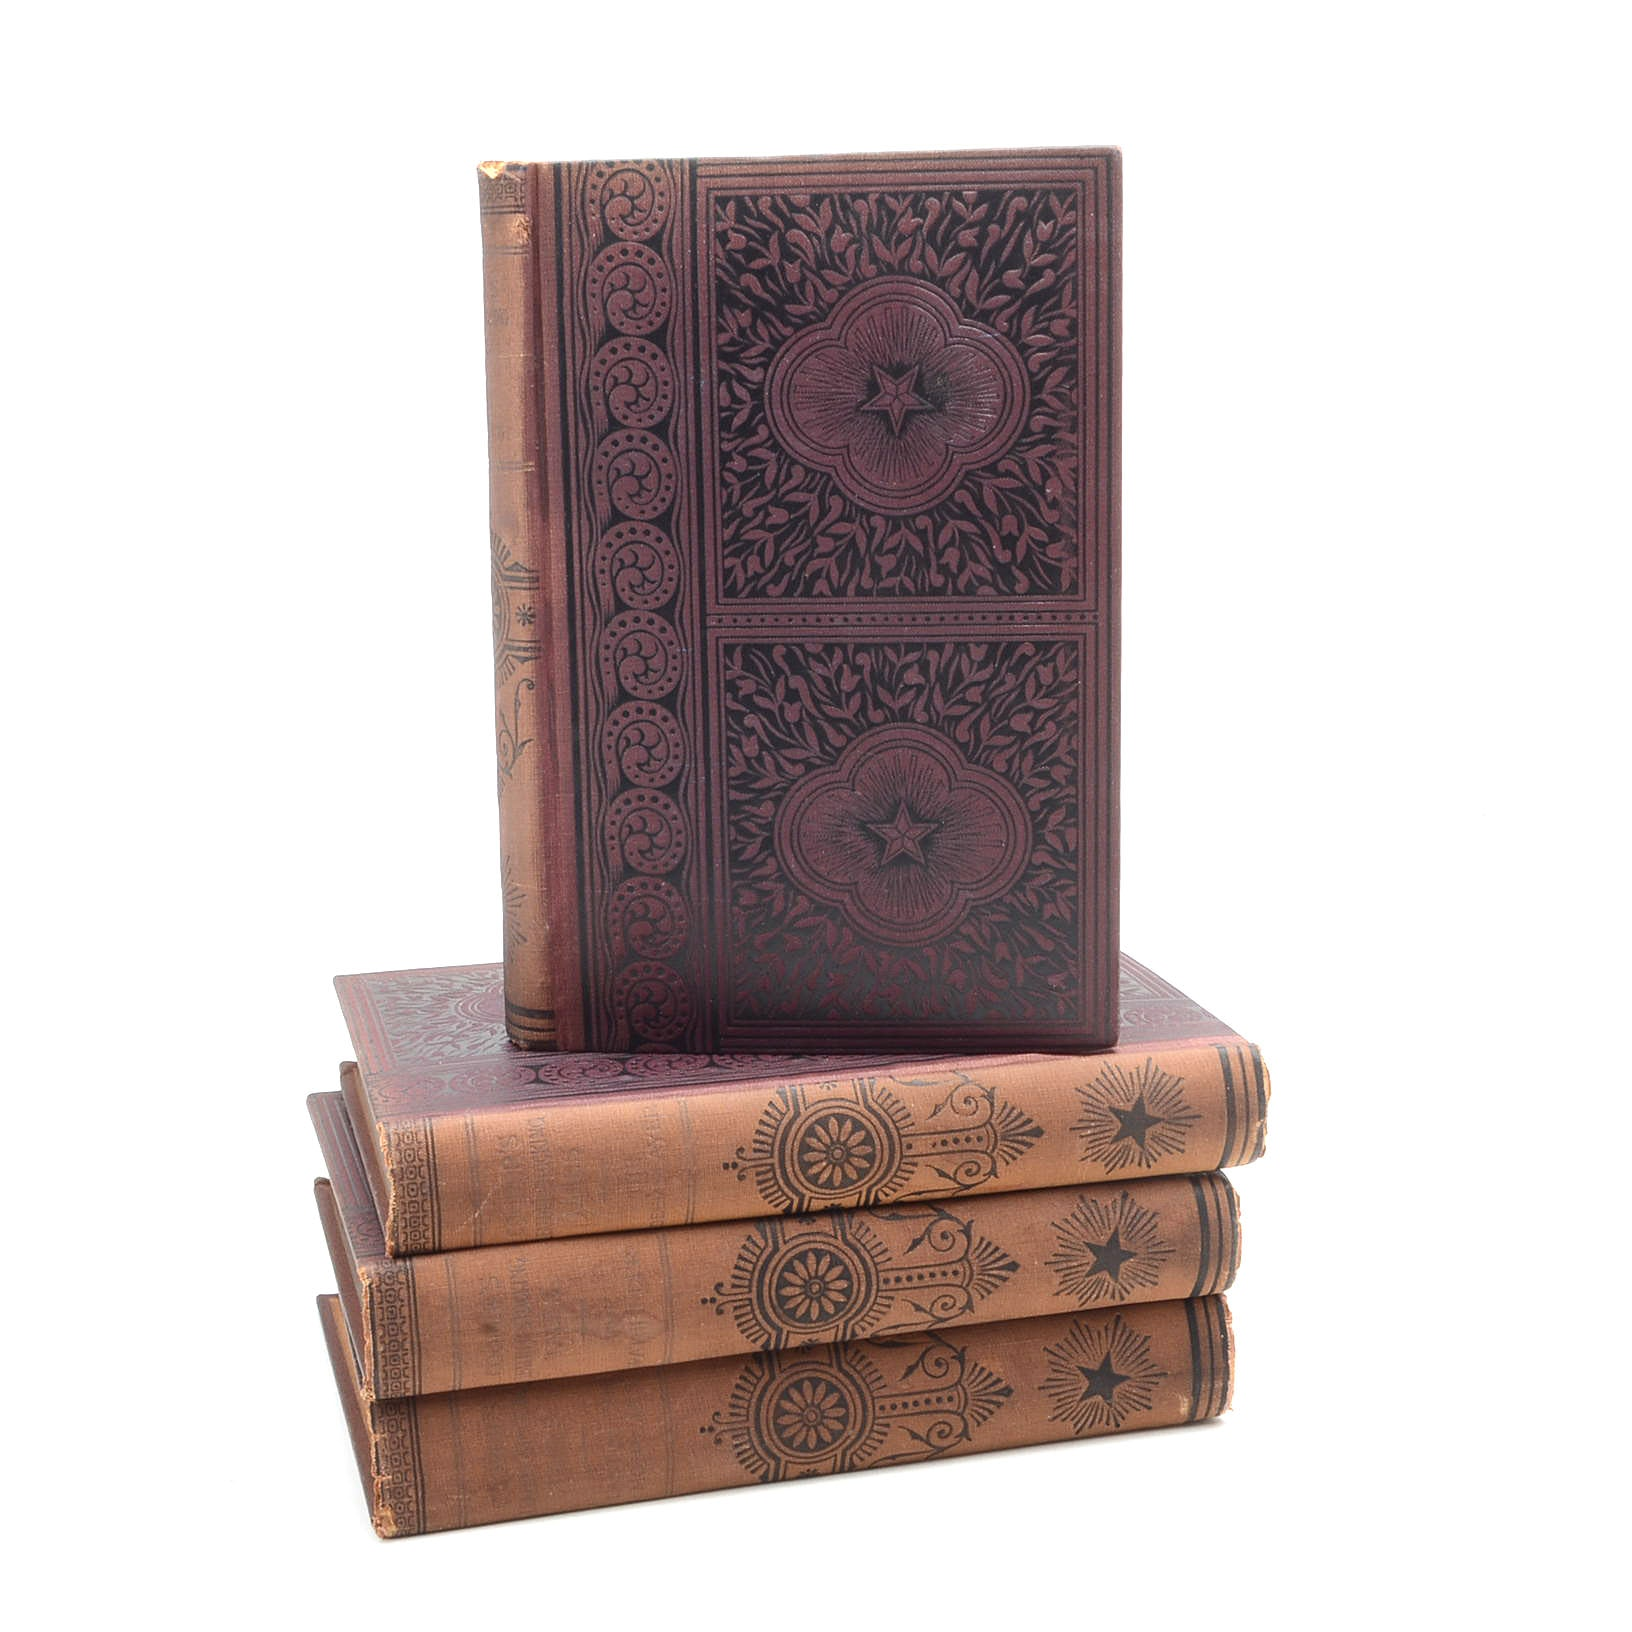 """Antique """"Leatherstockings Tales"""" Book Collection"""